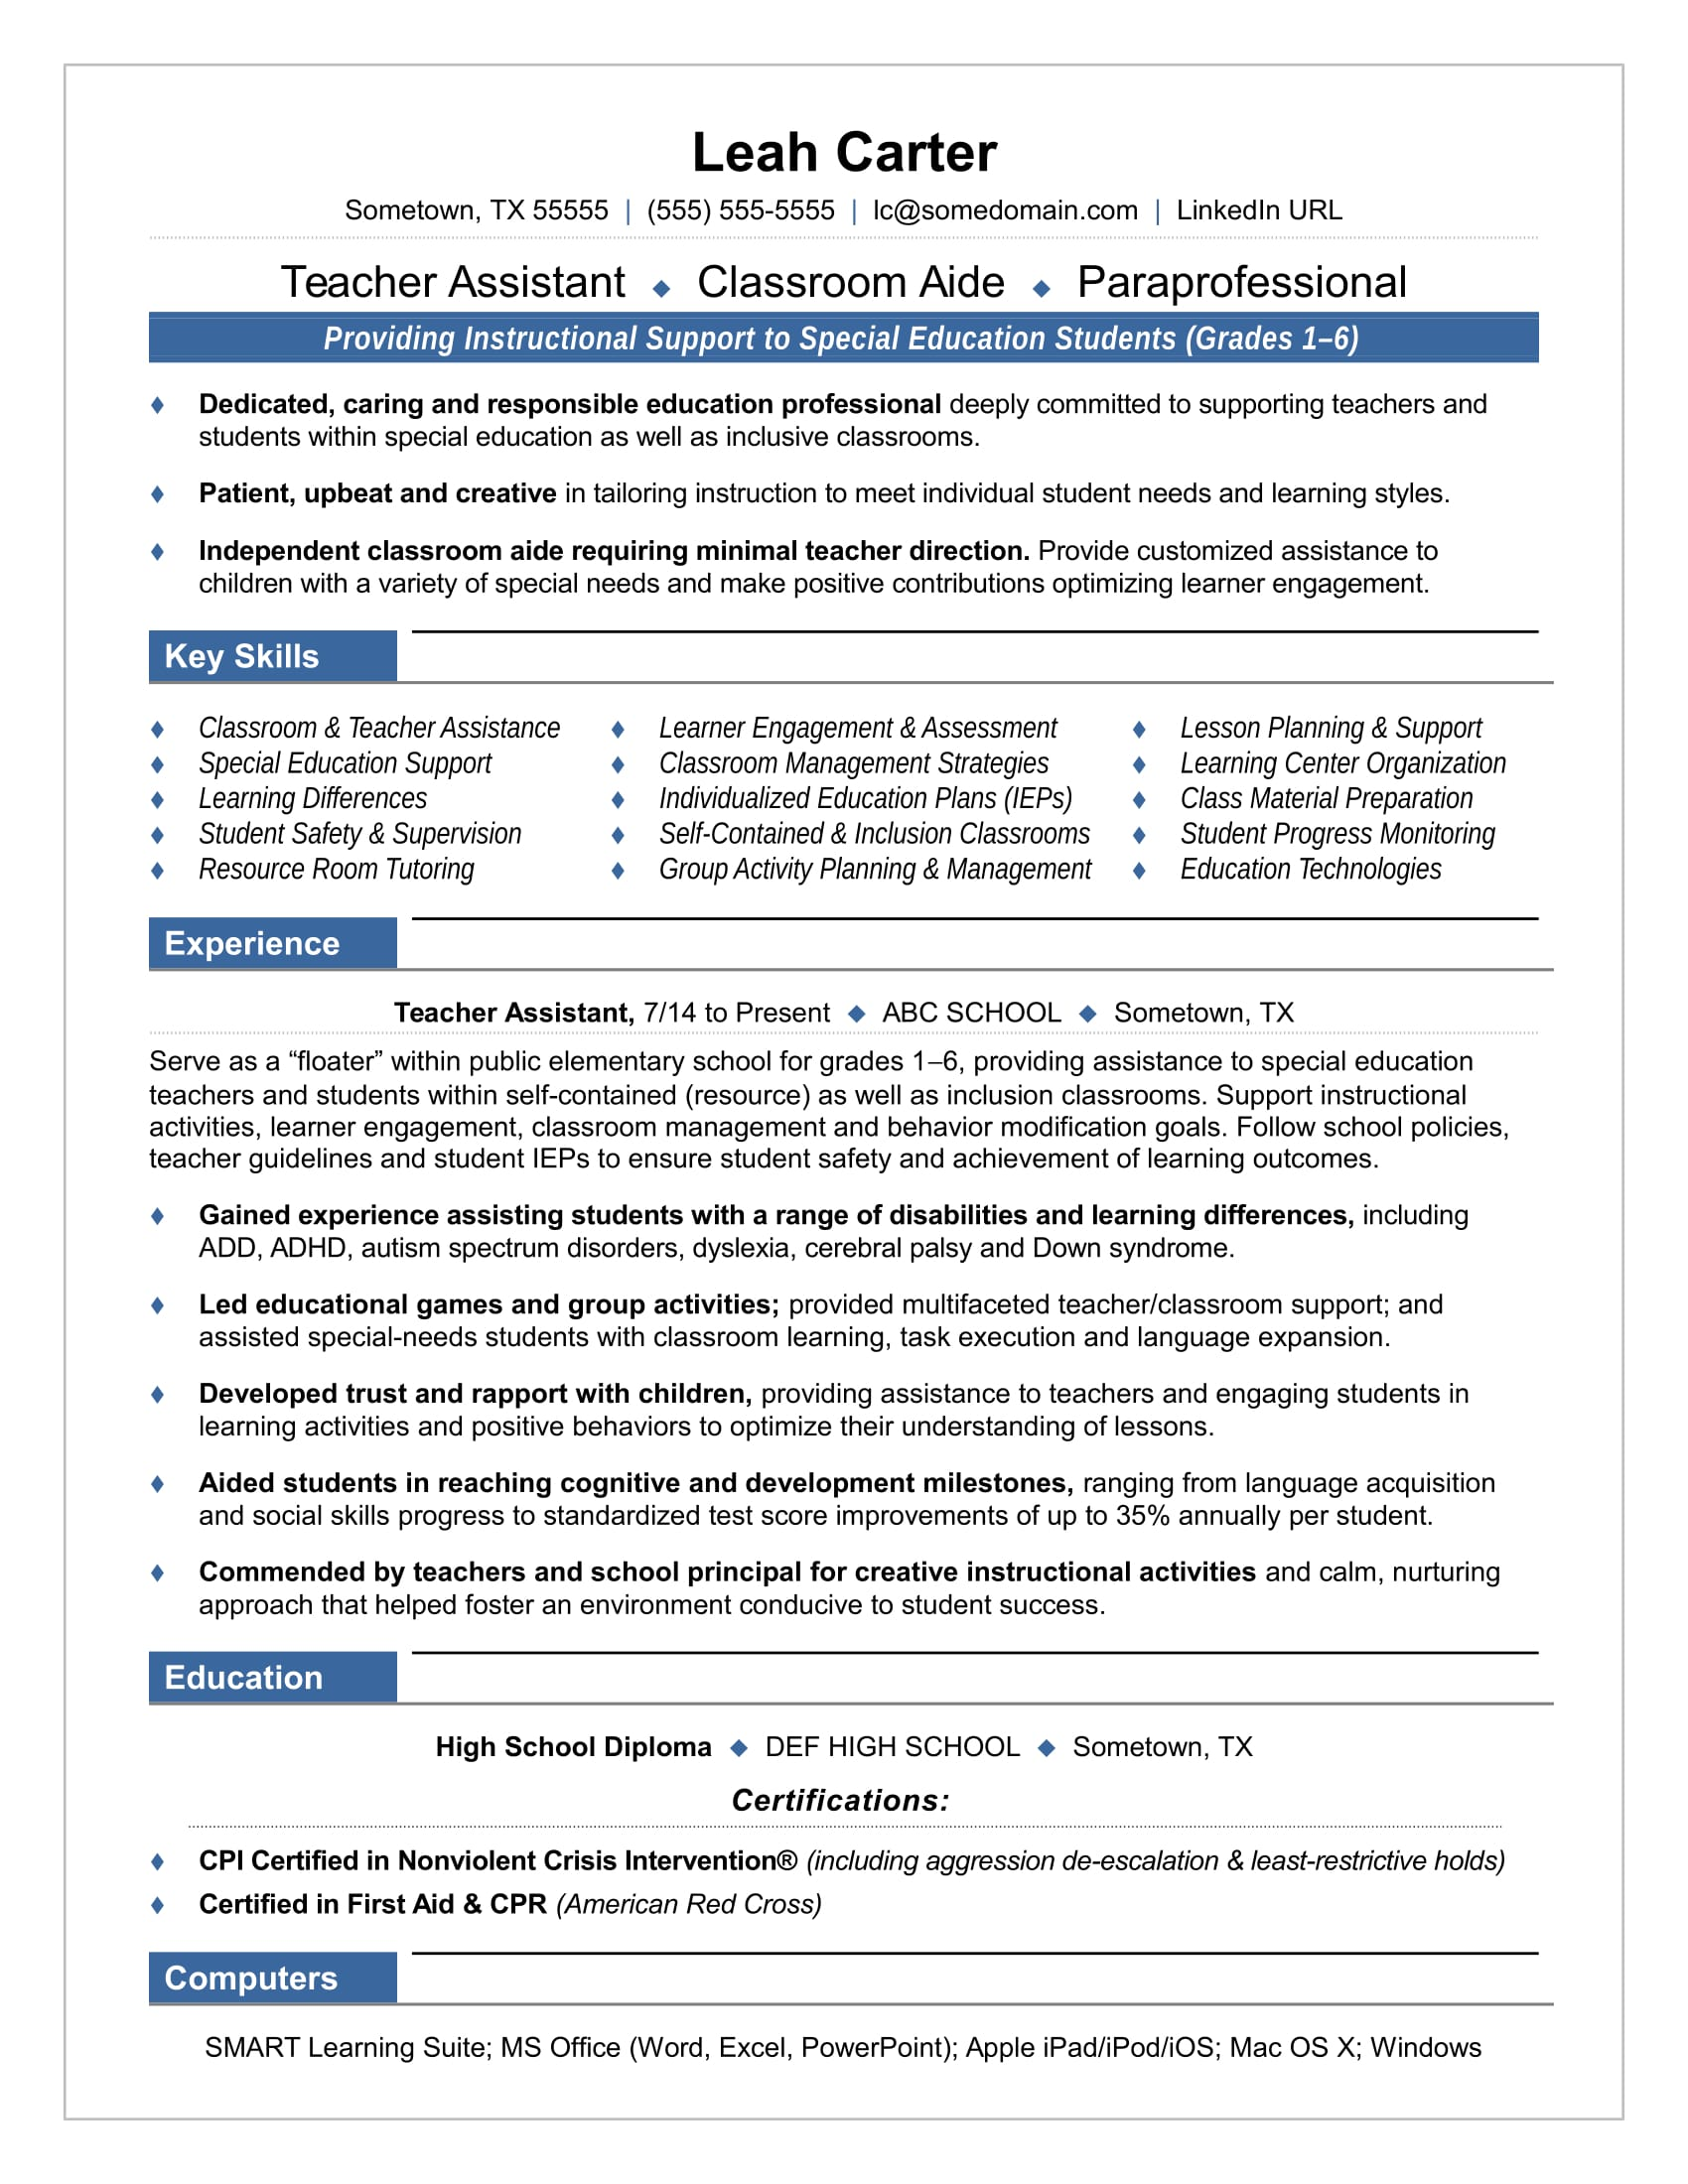 teacher assistant resume sample - Special Education Resume Samples